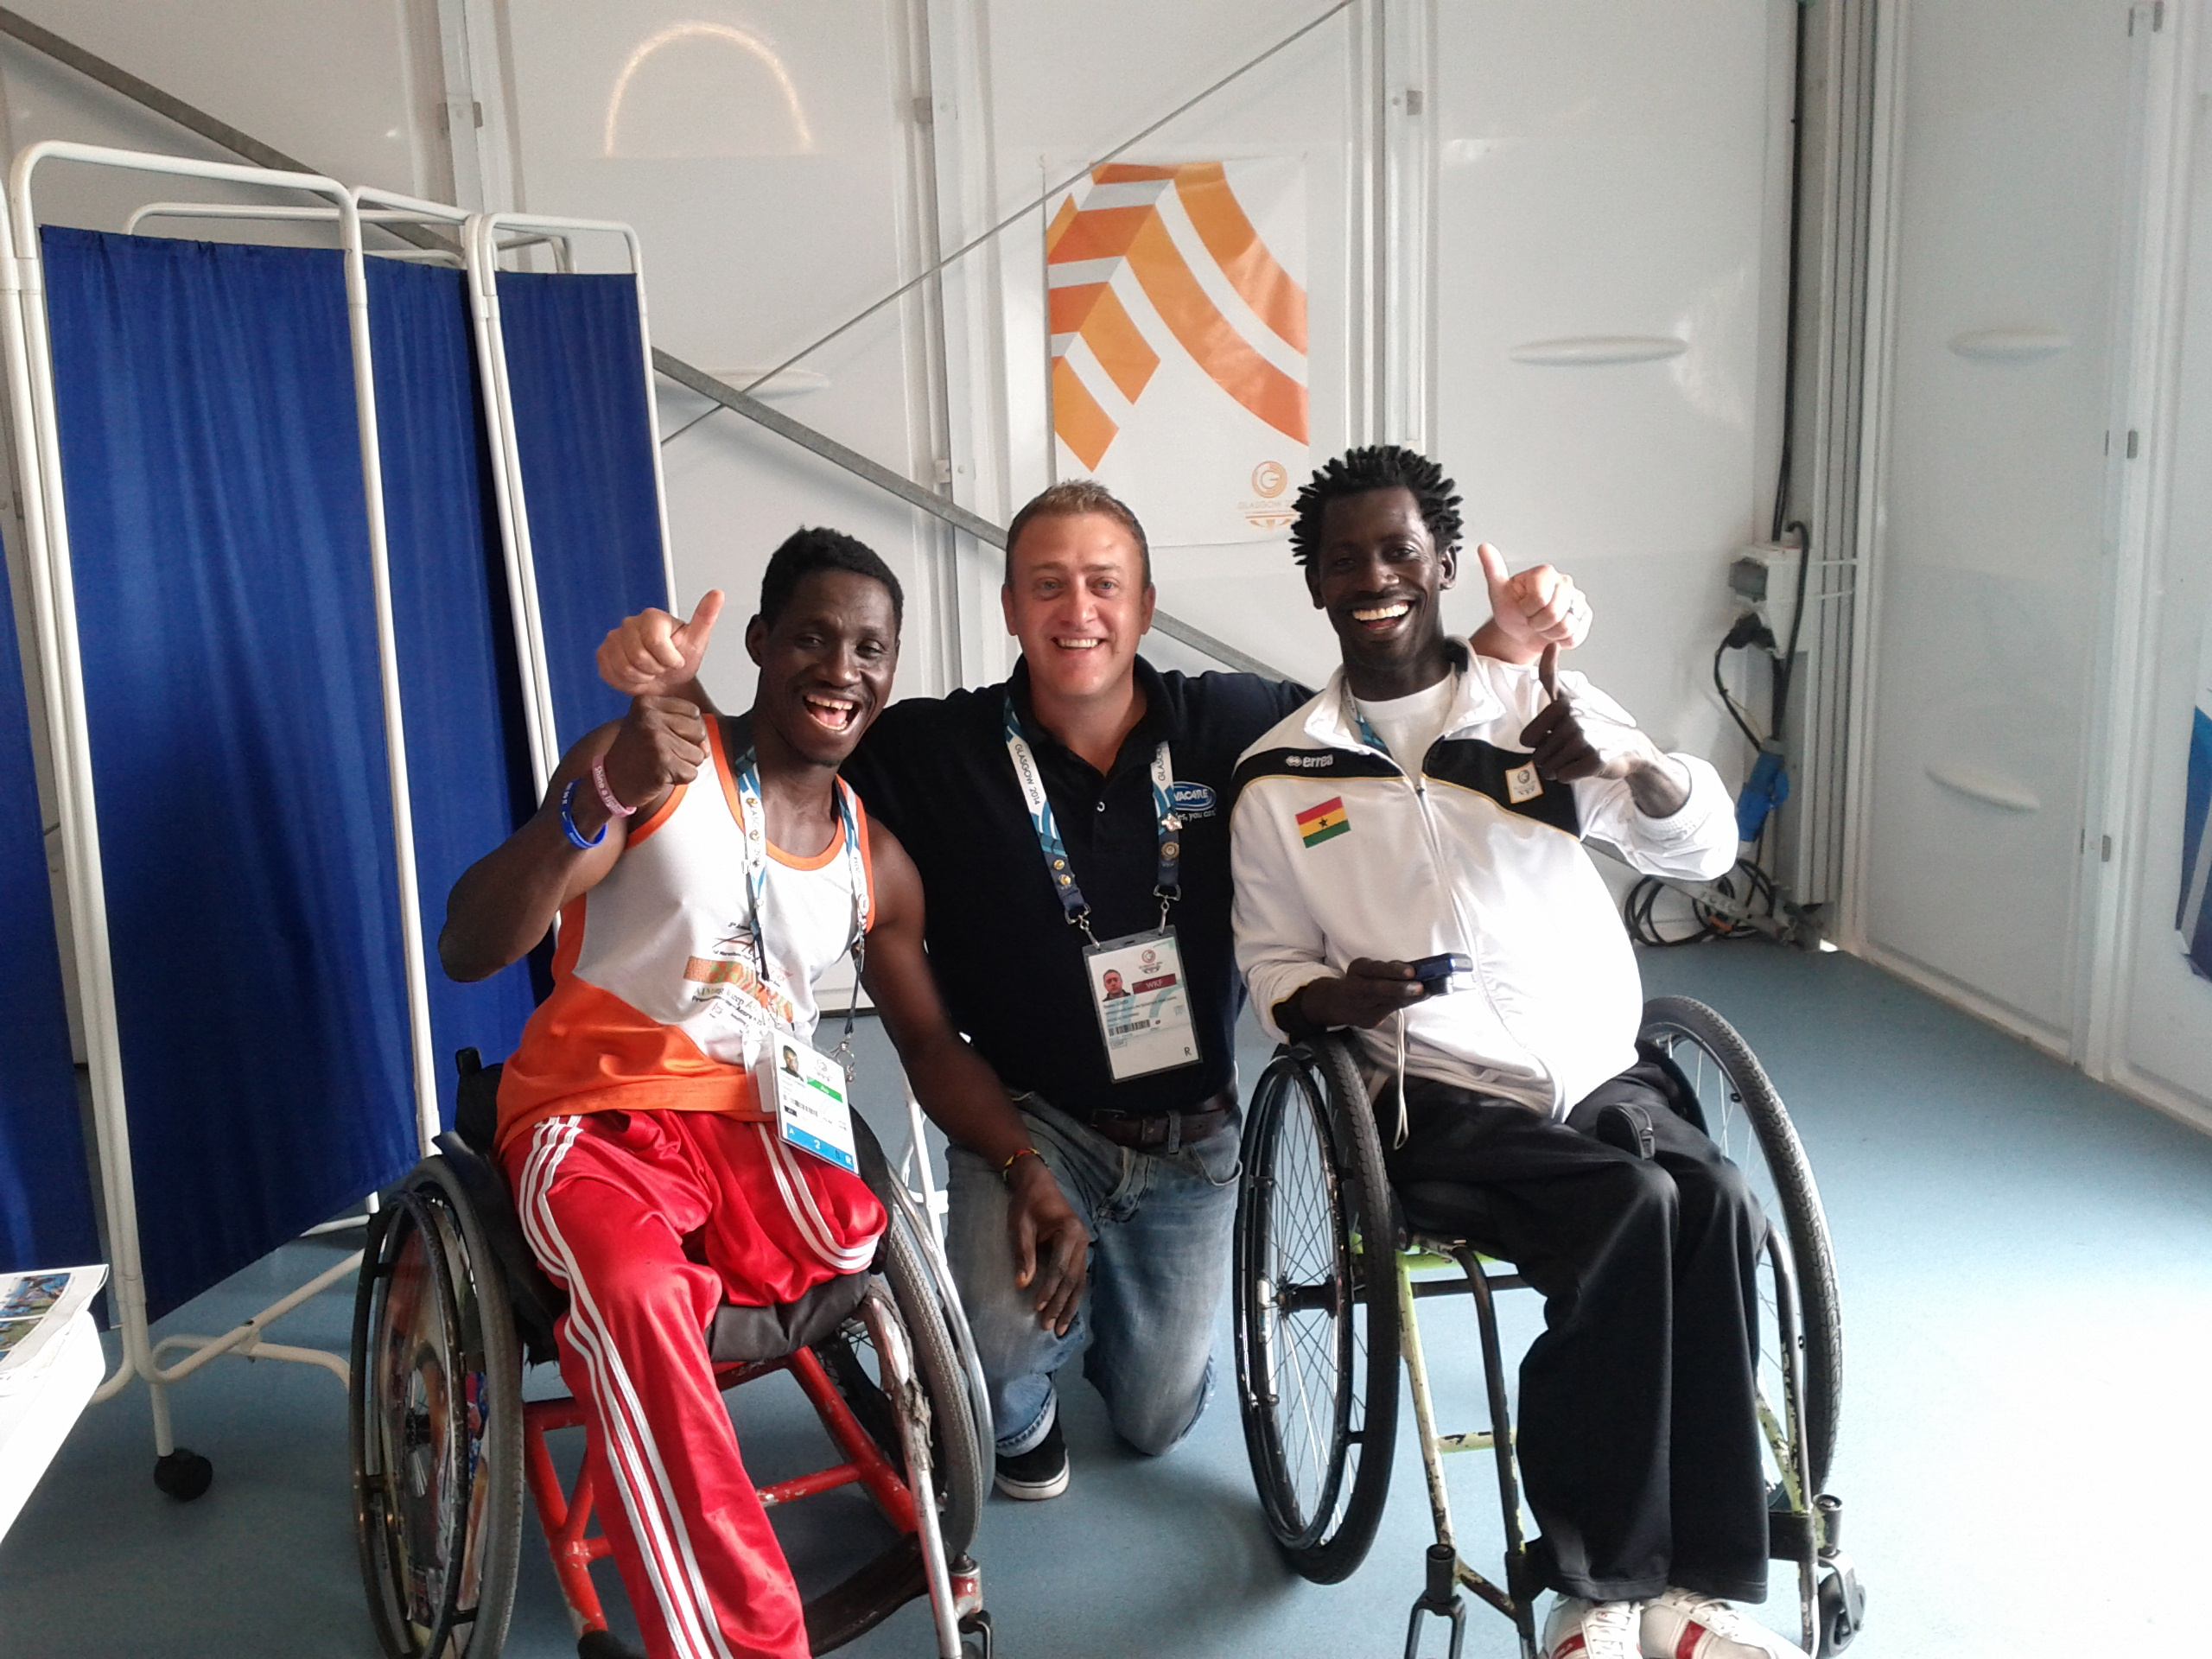 Invacare Repair Service wins fans at Commonwealth Games Glasgow 2014